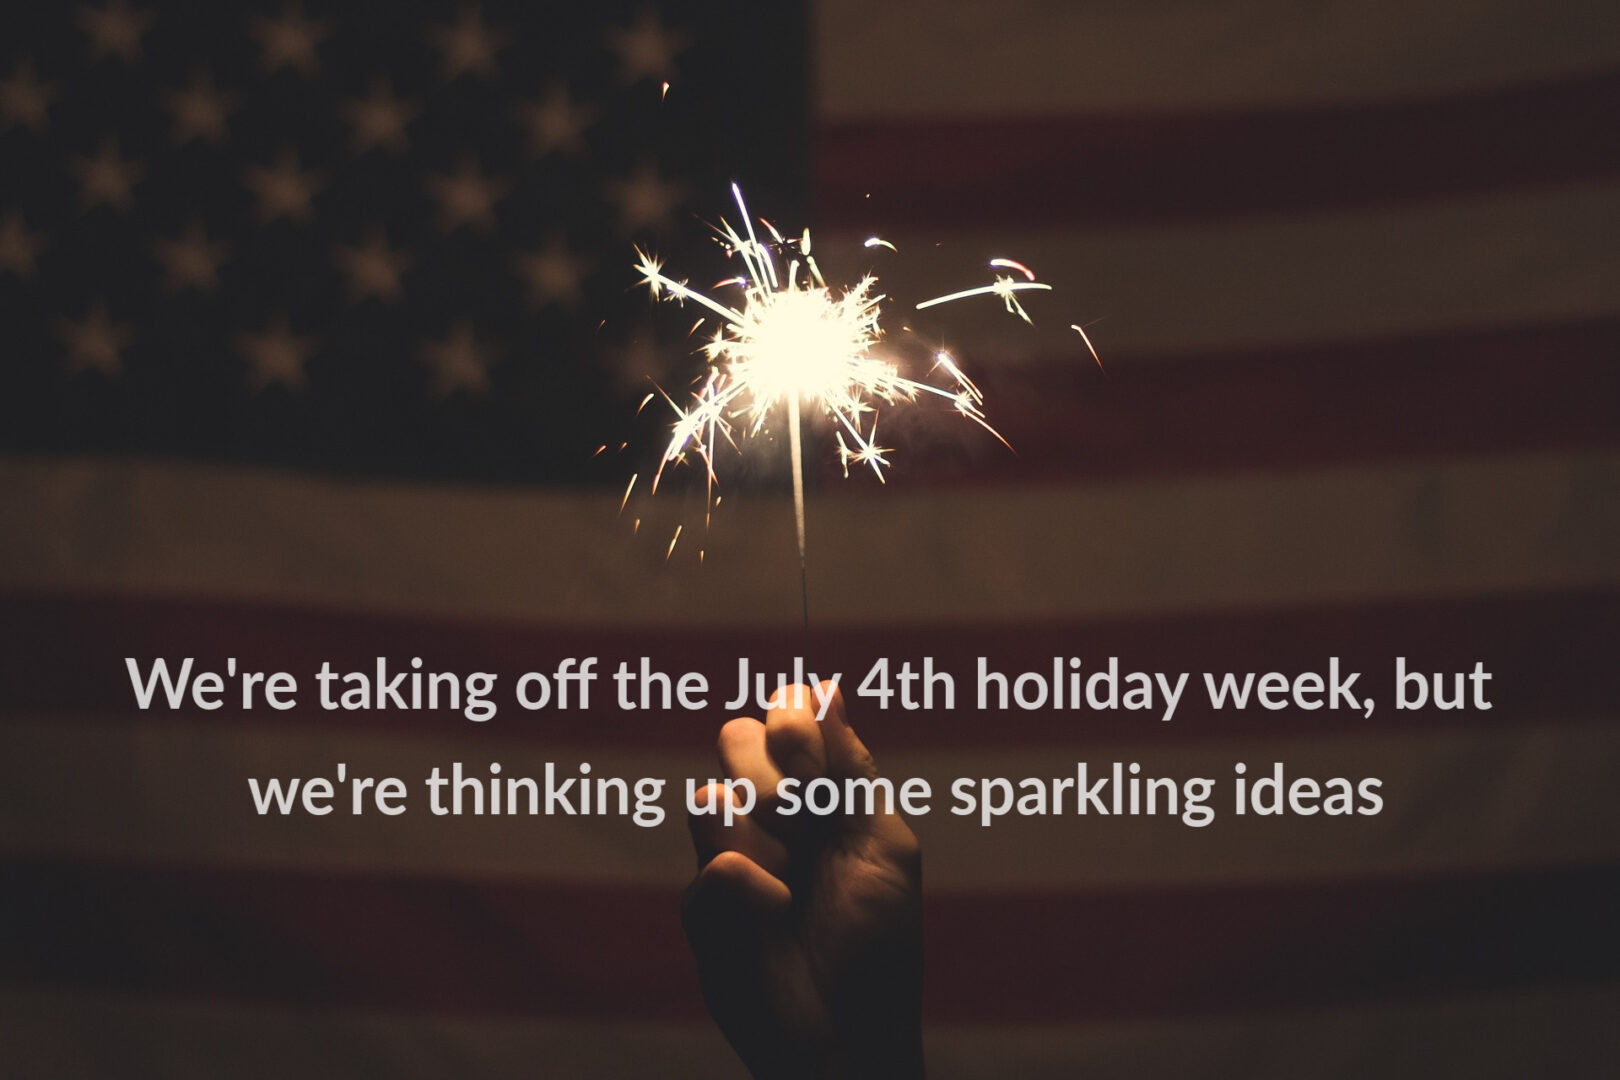 Sparkles for July 4th Holiday